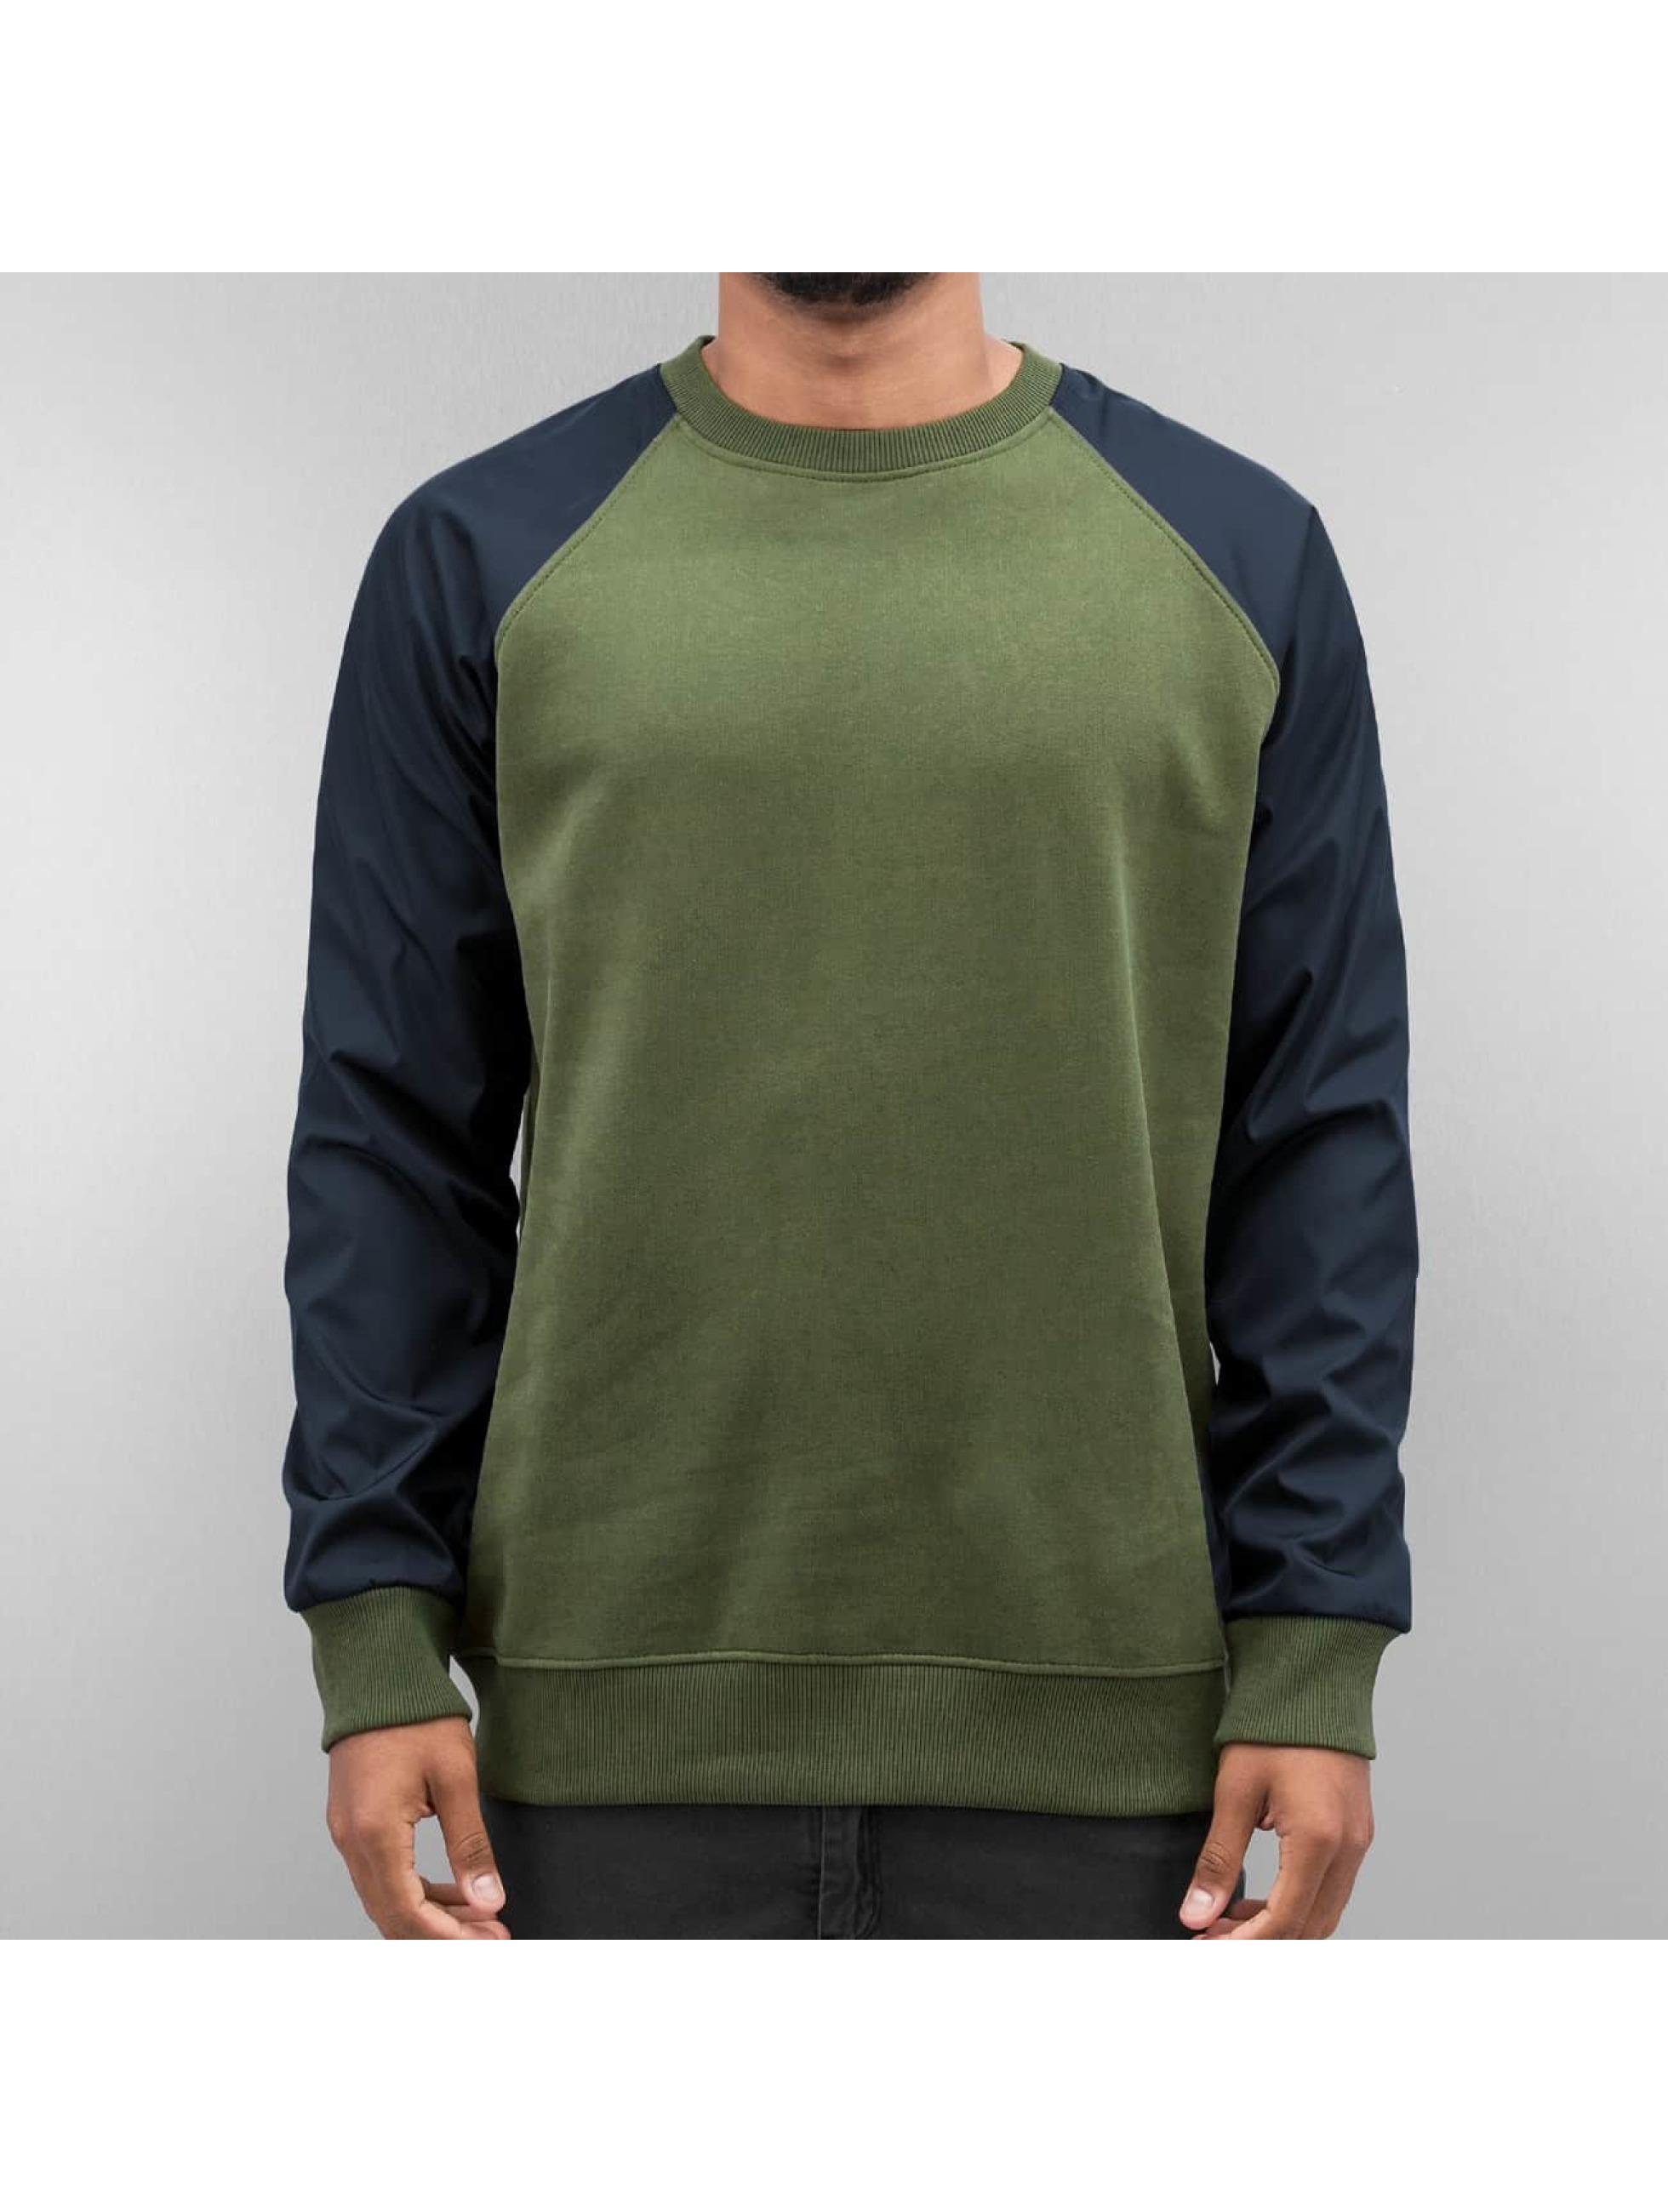 Yezz Sweat & Pull Belize olive